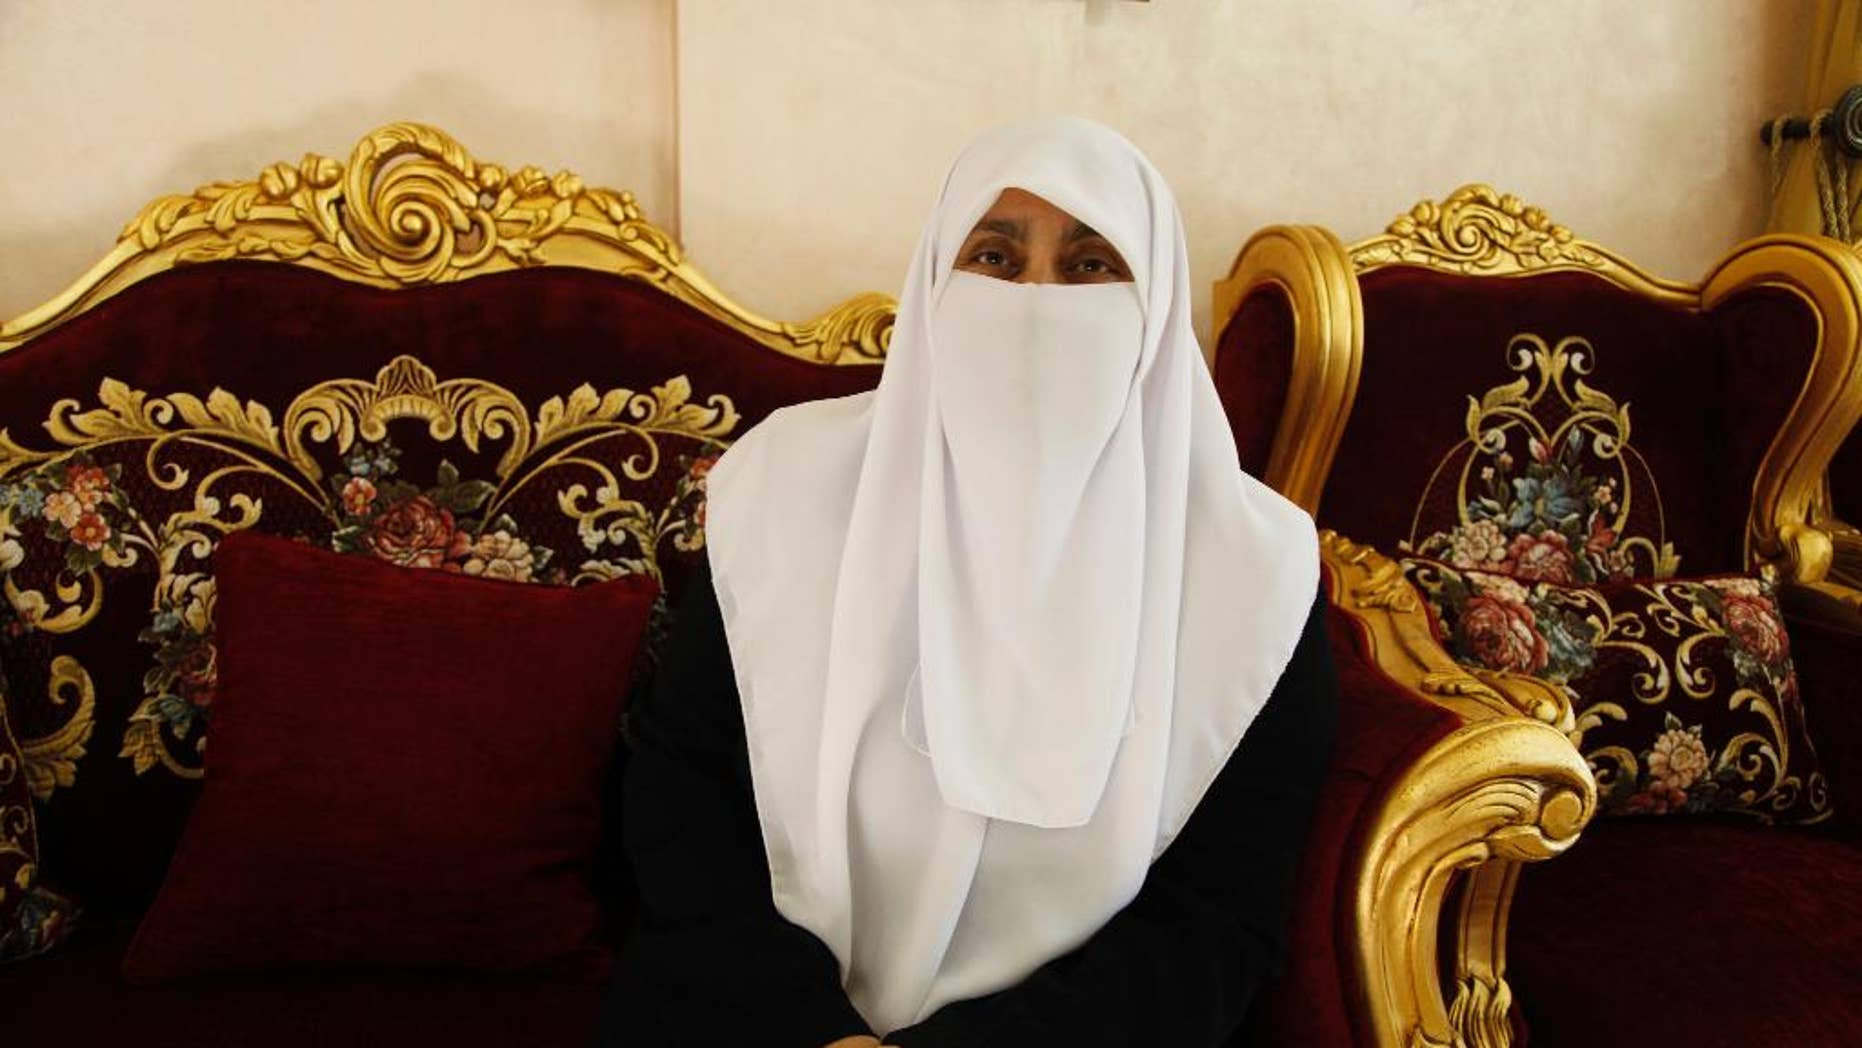 High school principal Huda Etoum poses for a portrait at her home in Jerash, Jordan, Thursday, Sept. 22, 2016. Etoum was one of 20 women elected to Jordan's 130-seat parliament this week, up from 18 female lawmakers in the outgoing legislature. Etoum, the second Jordanian lawmaker wearing a face veil, said in an interview that she's been in public service for more than two decades and that her ultra-conservative dress won't be an obstacle in parliament. (AP Photo/Sam McNeil)